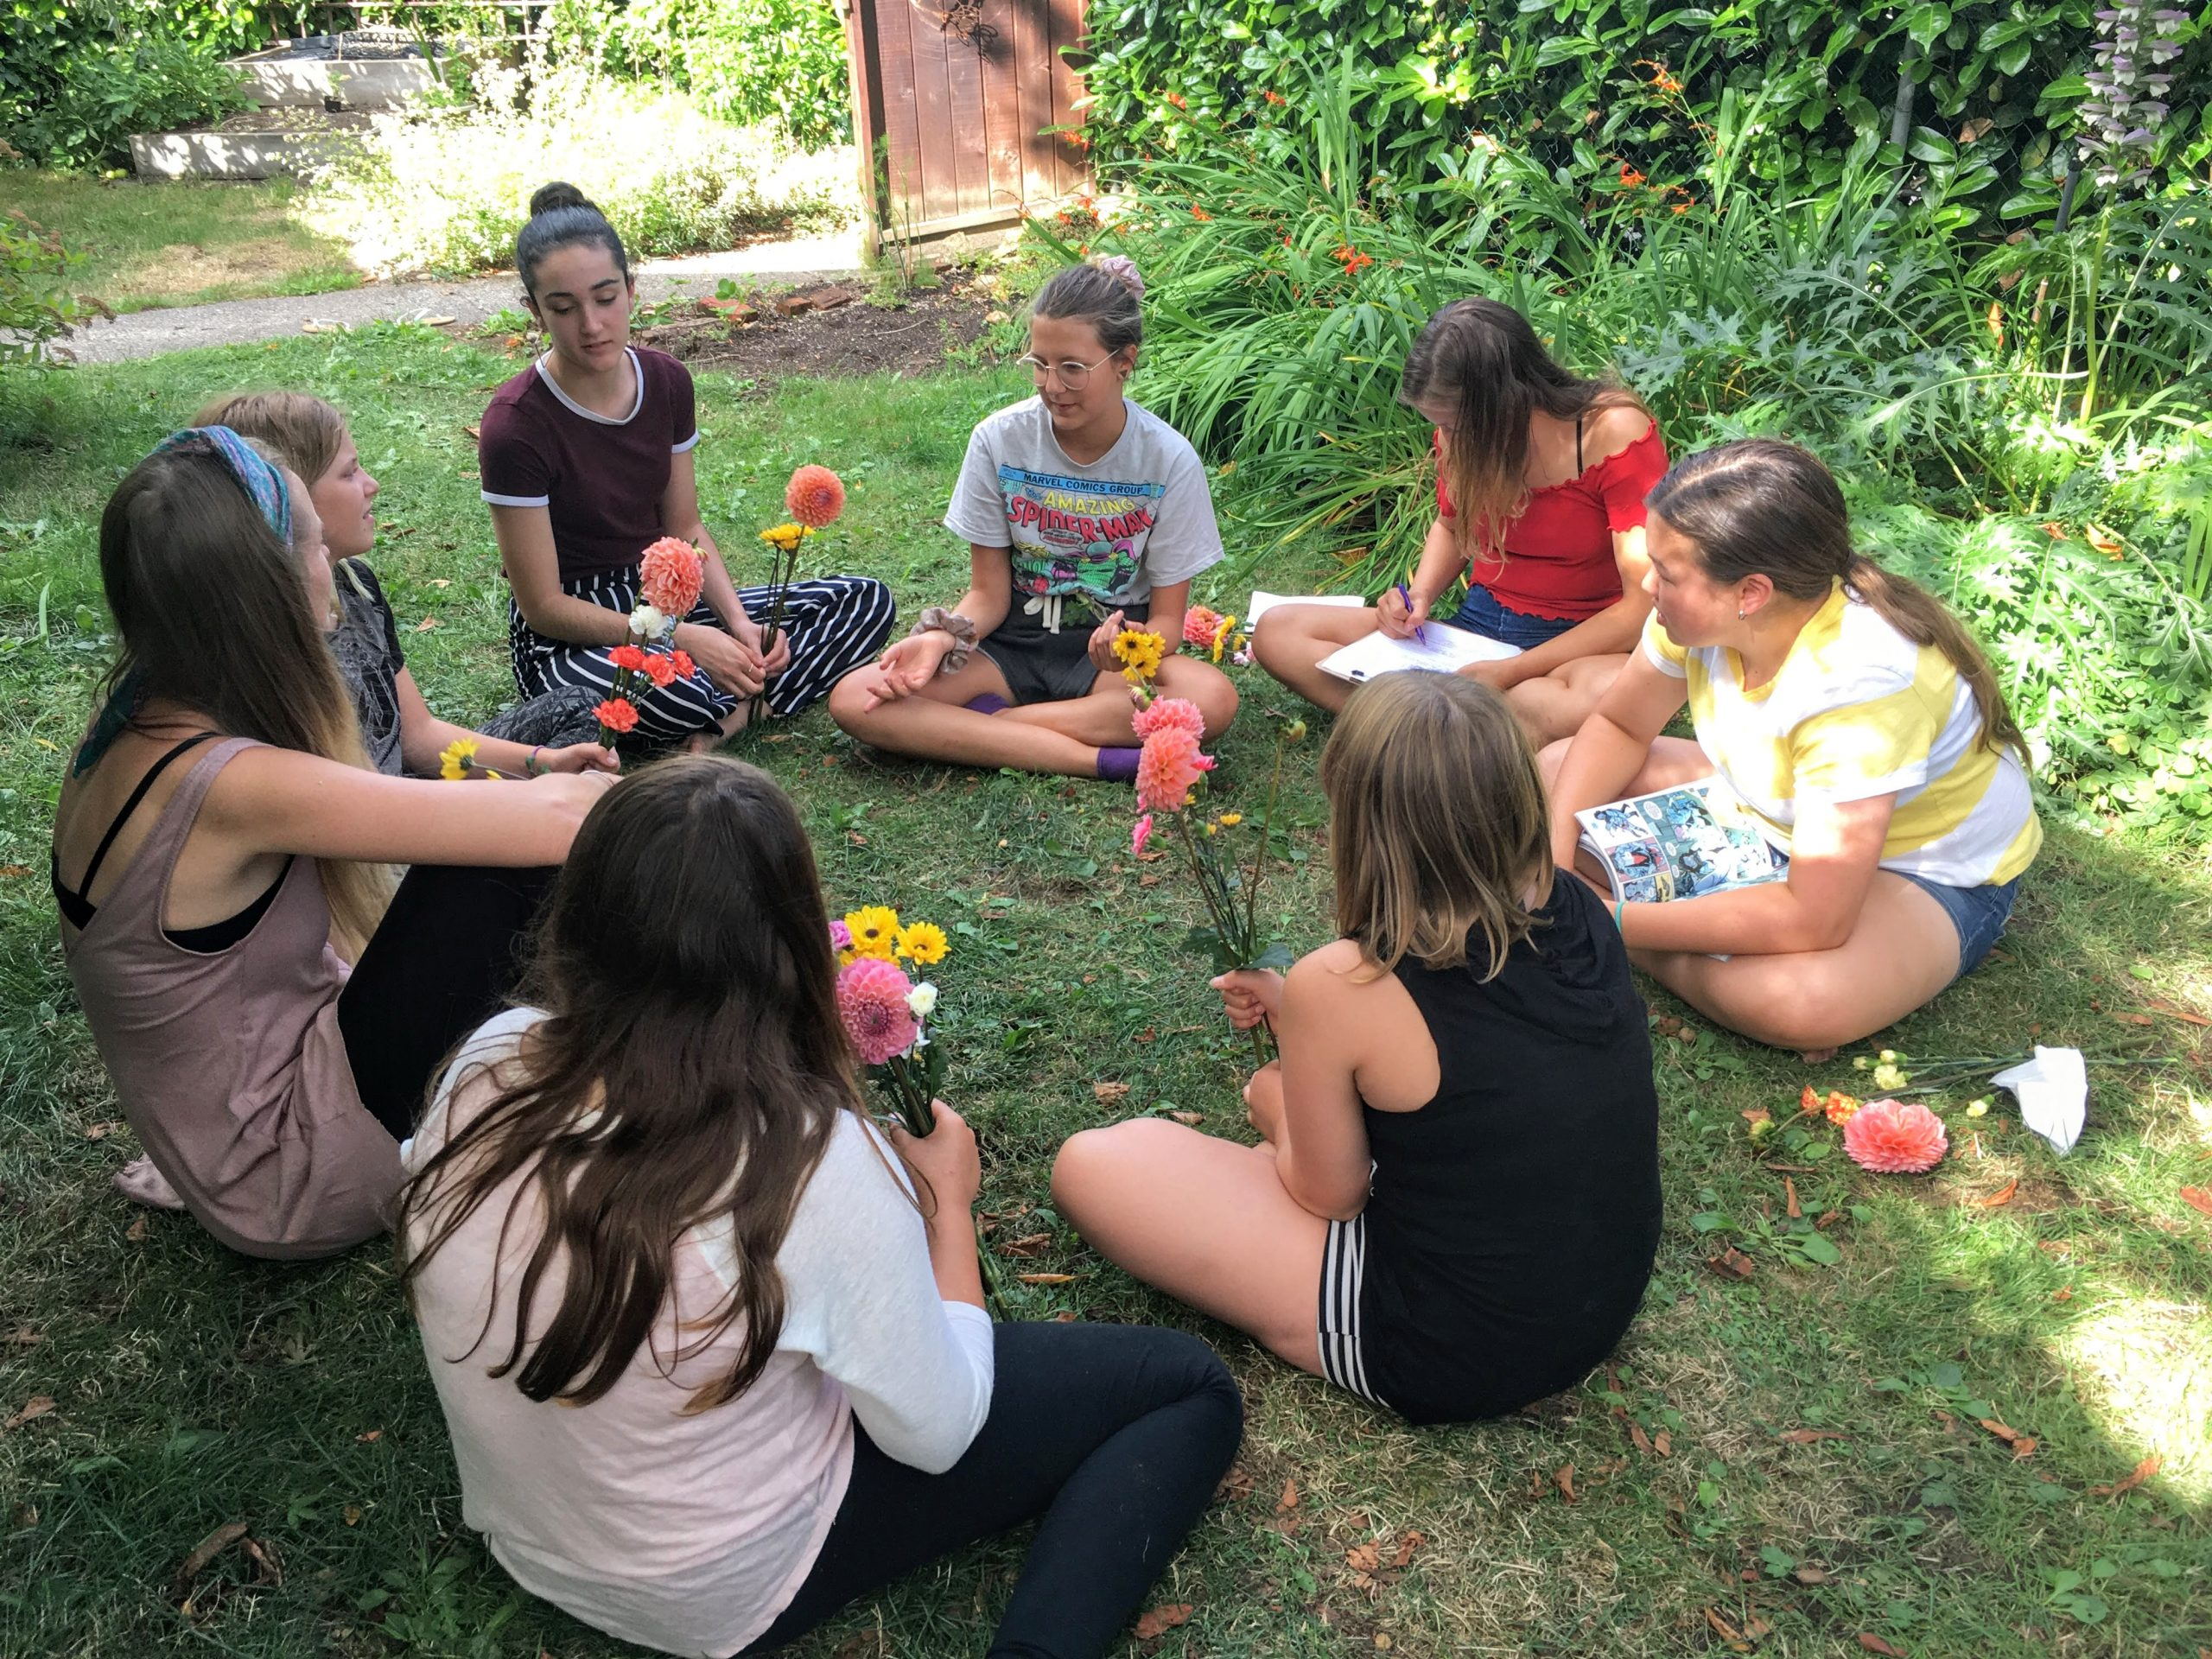 Girls sitting in a circle outdoors having a meaningful discussion